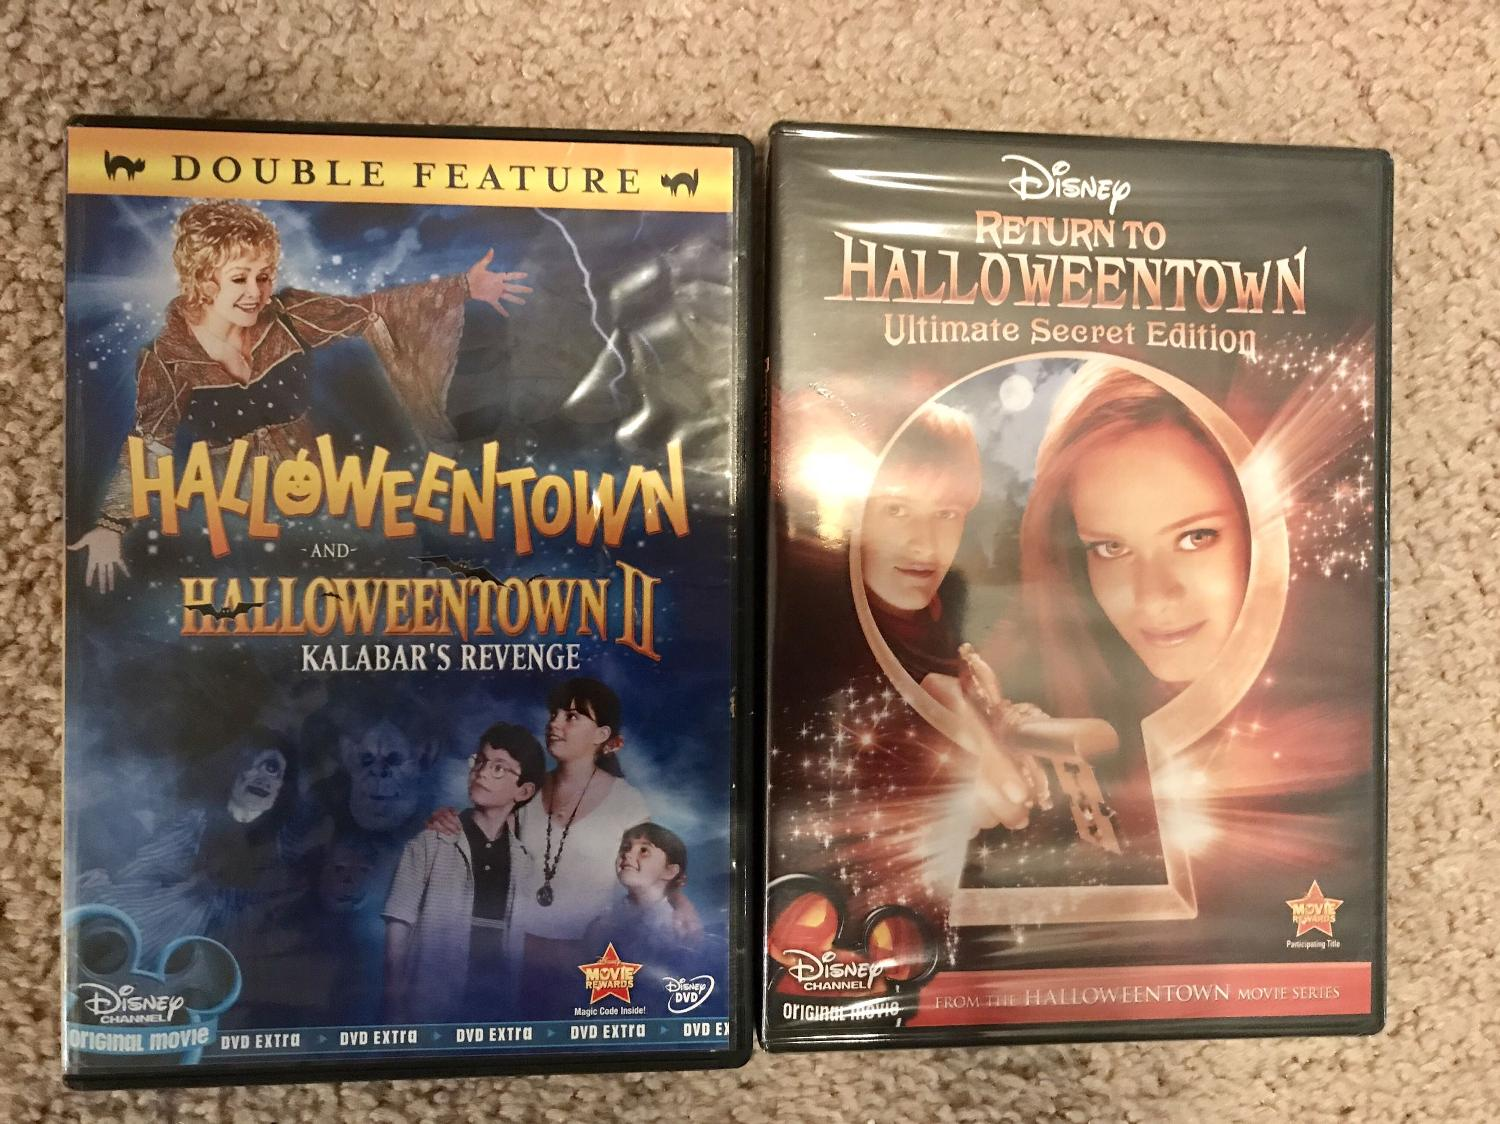 find more halloweentown movies 12 3 dvds 8 for all 3 for sale at up to 90 off